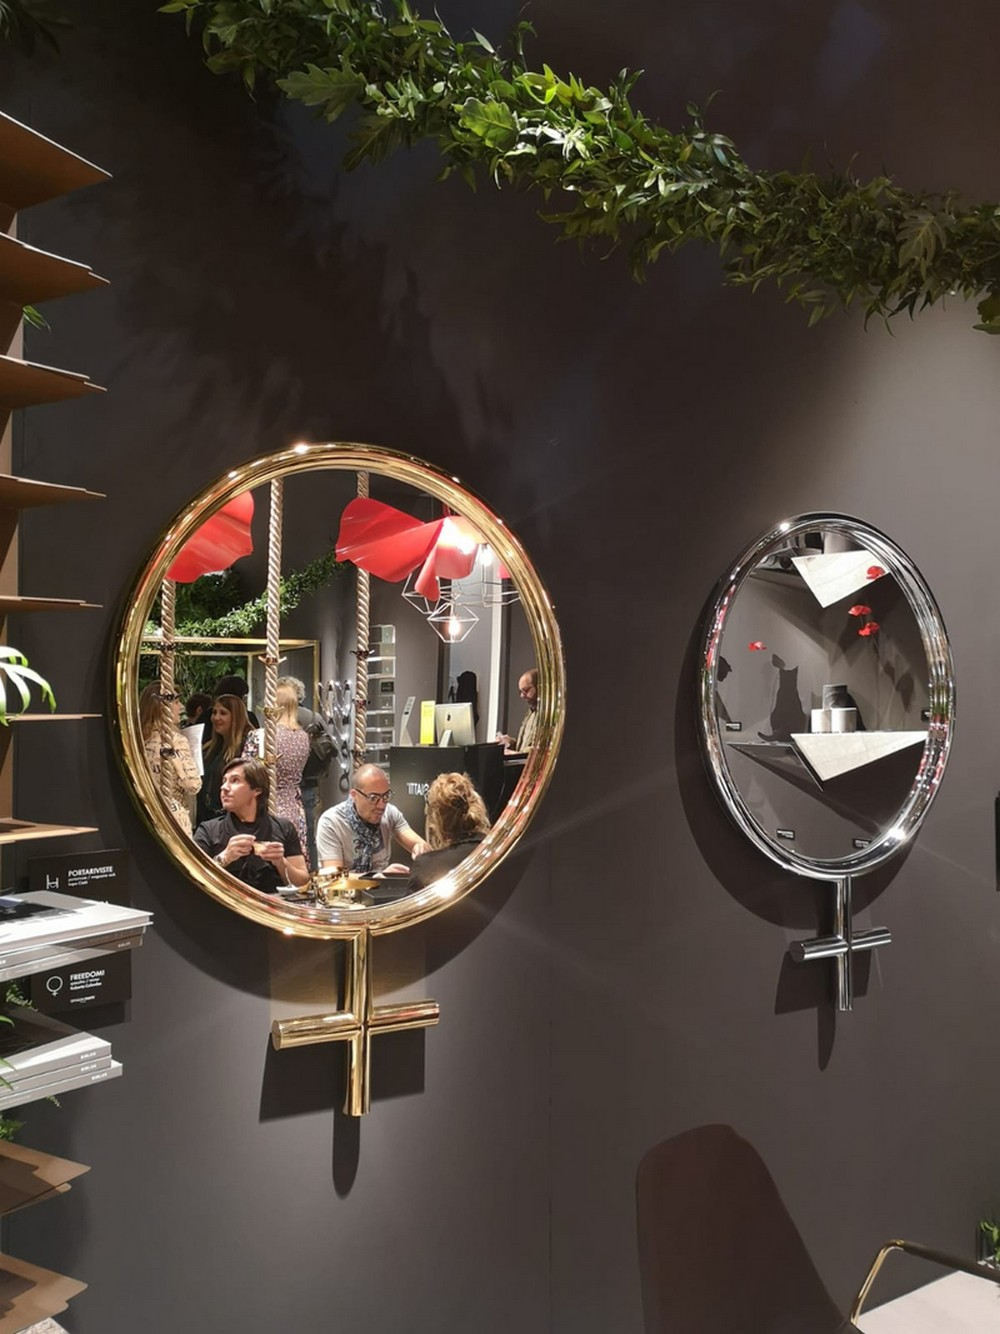 CovetED Awards Highlights The Best Of Salone Del Mobile Milano 2019 coveted awards CovetED Awards Highlights The Best Of Salone Del Mobile Milano 2019 CovetED Awards Highlights The Best Of Salone Del Mobile Milano 2019 13